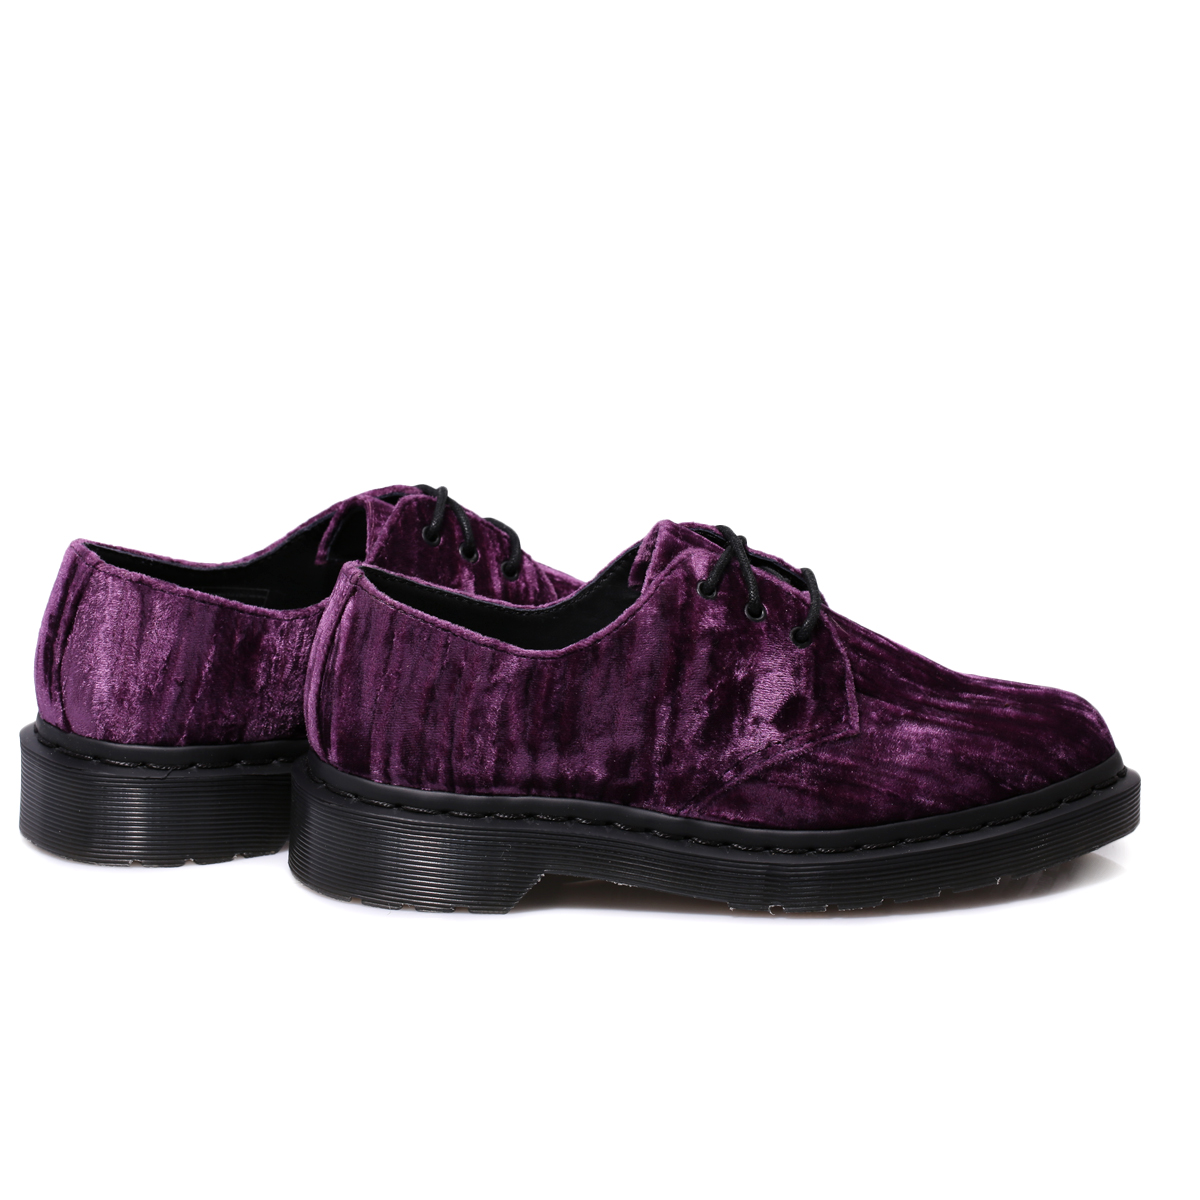 Free shipping BOTH ways on womens velvet shoes, from our vast selection of styles. Fast delivery, and 24/7/ real-person service with a smile. Click or call